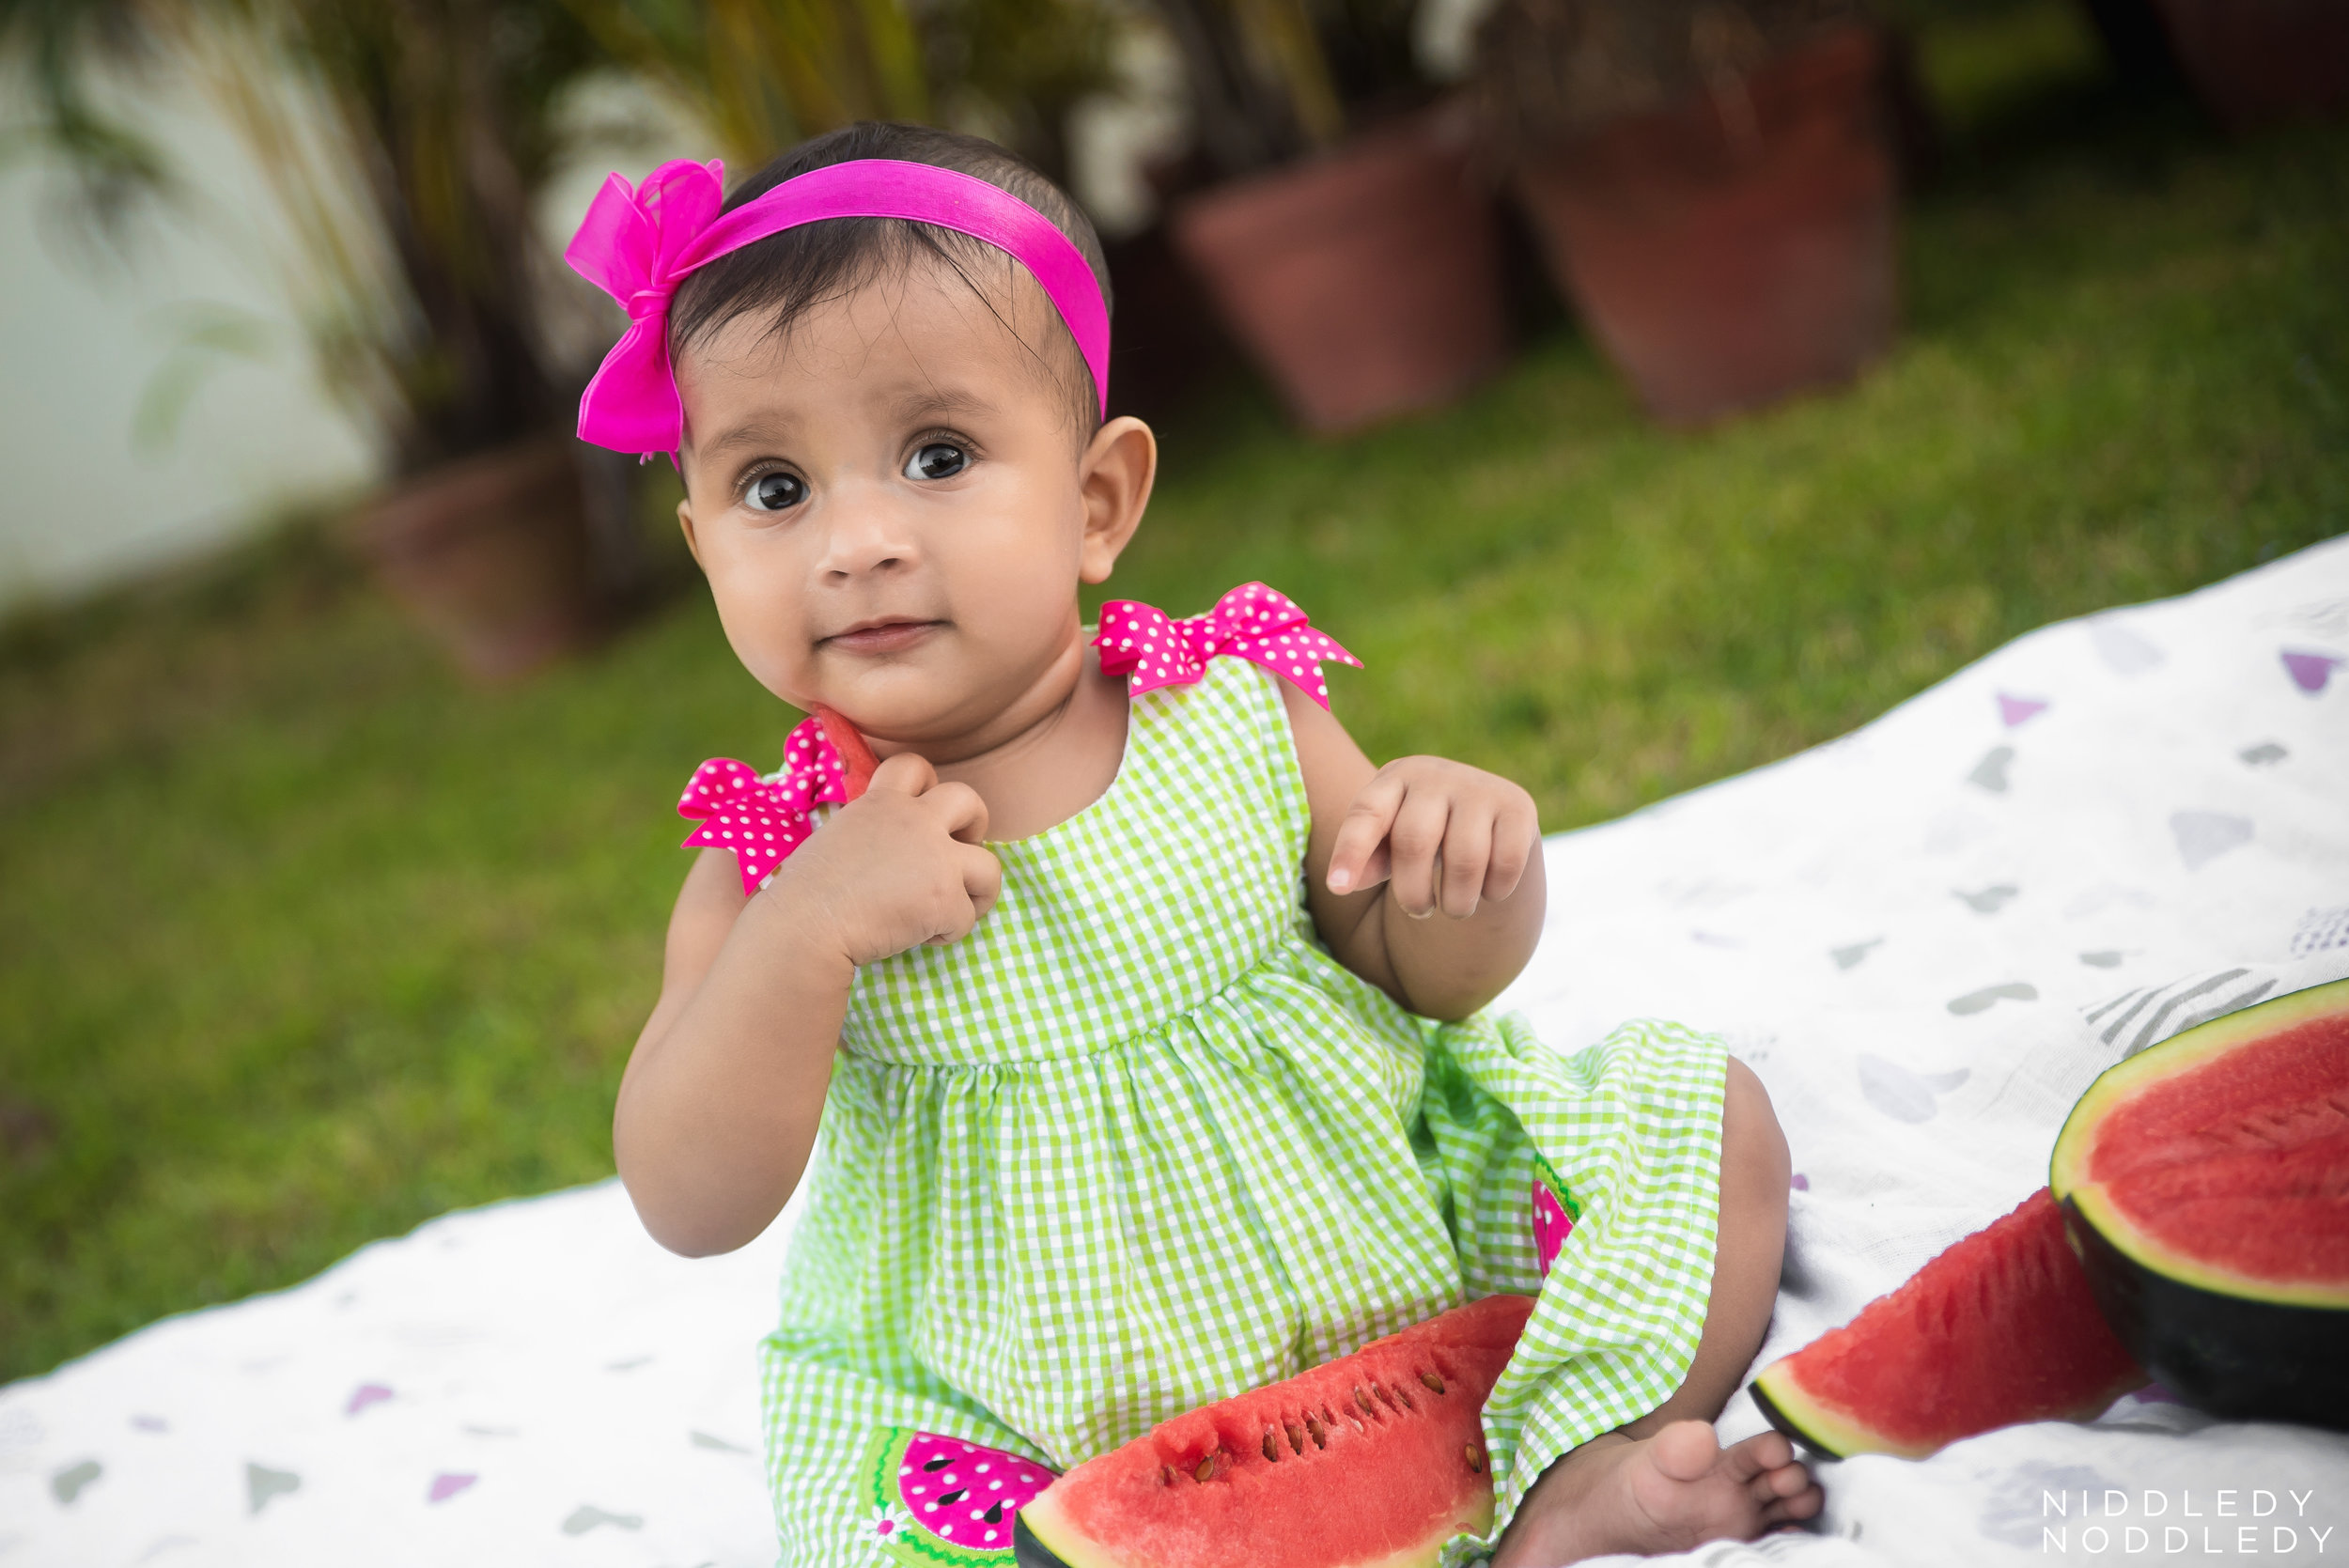 Anaisha Baby Photoshoot ❤ NiddledyNoddledy.com ~ Bumps to Babies Photography, Kolkata - 72.jpg